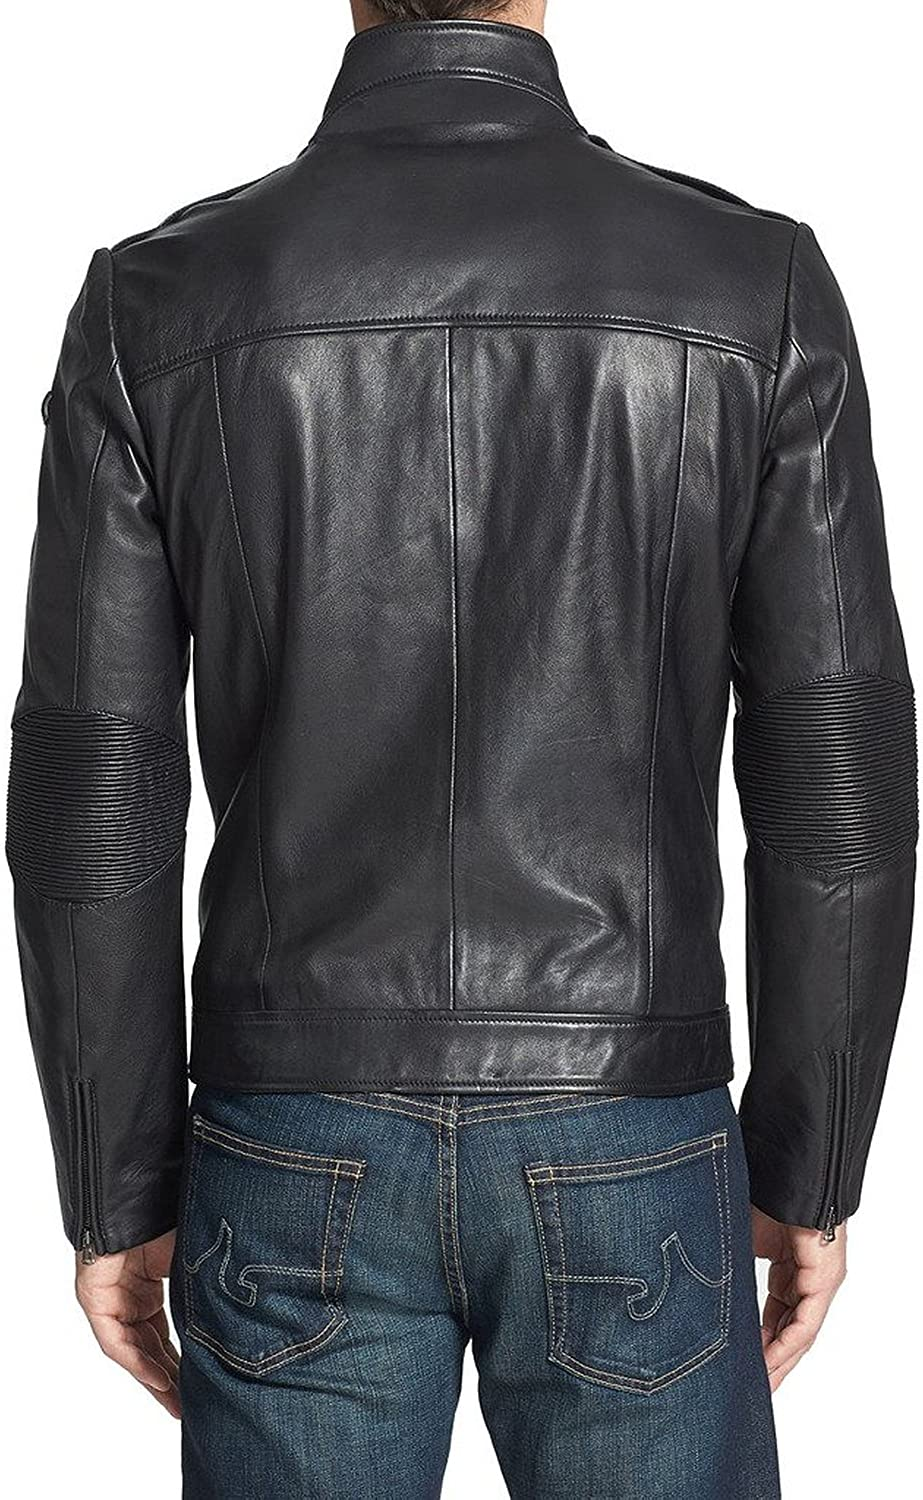 New Mens Leather Jacket Slim fit Biker Motorcycle Genuine Cow Leather Jacket LFC579 XXXL Black